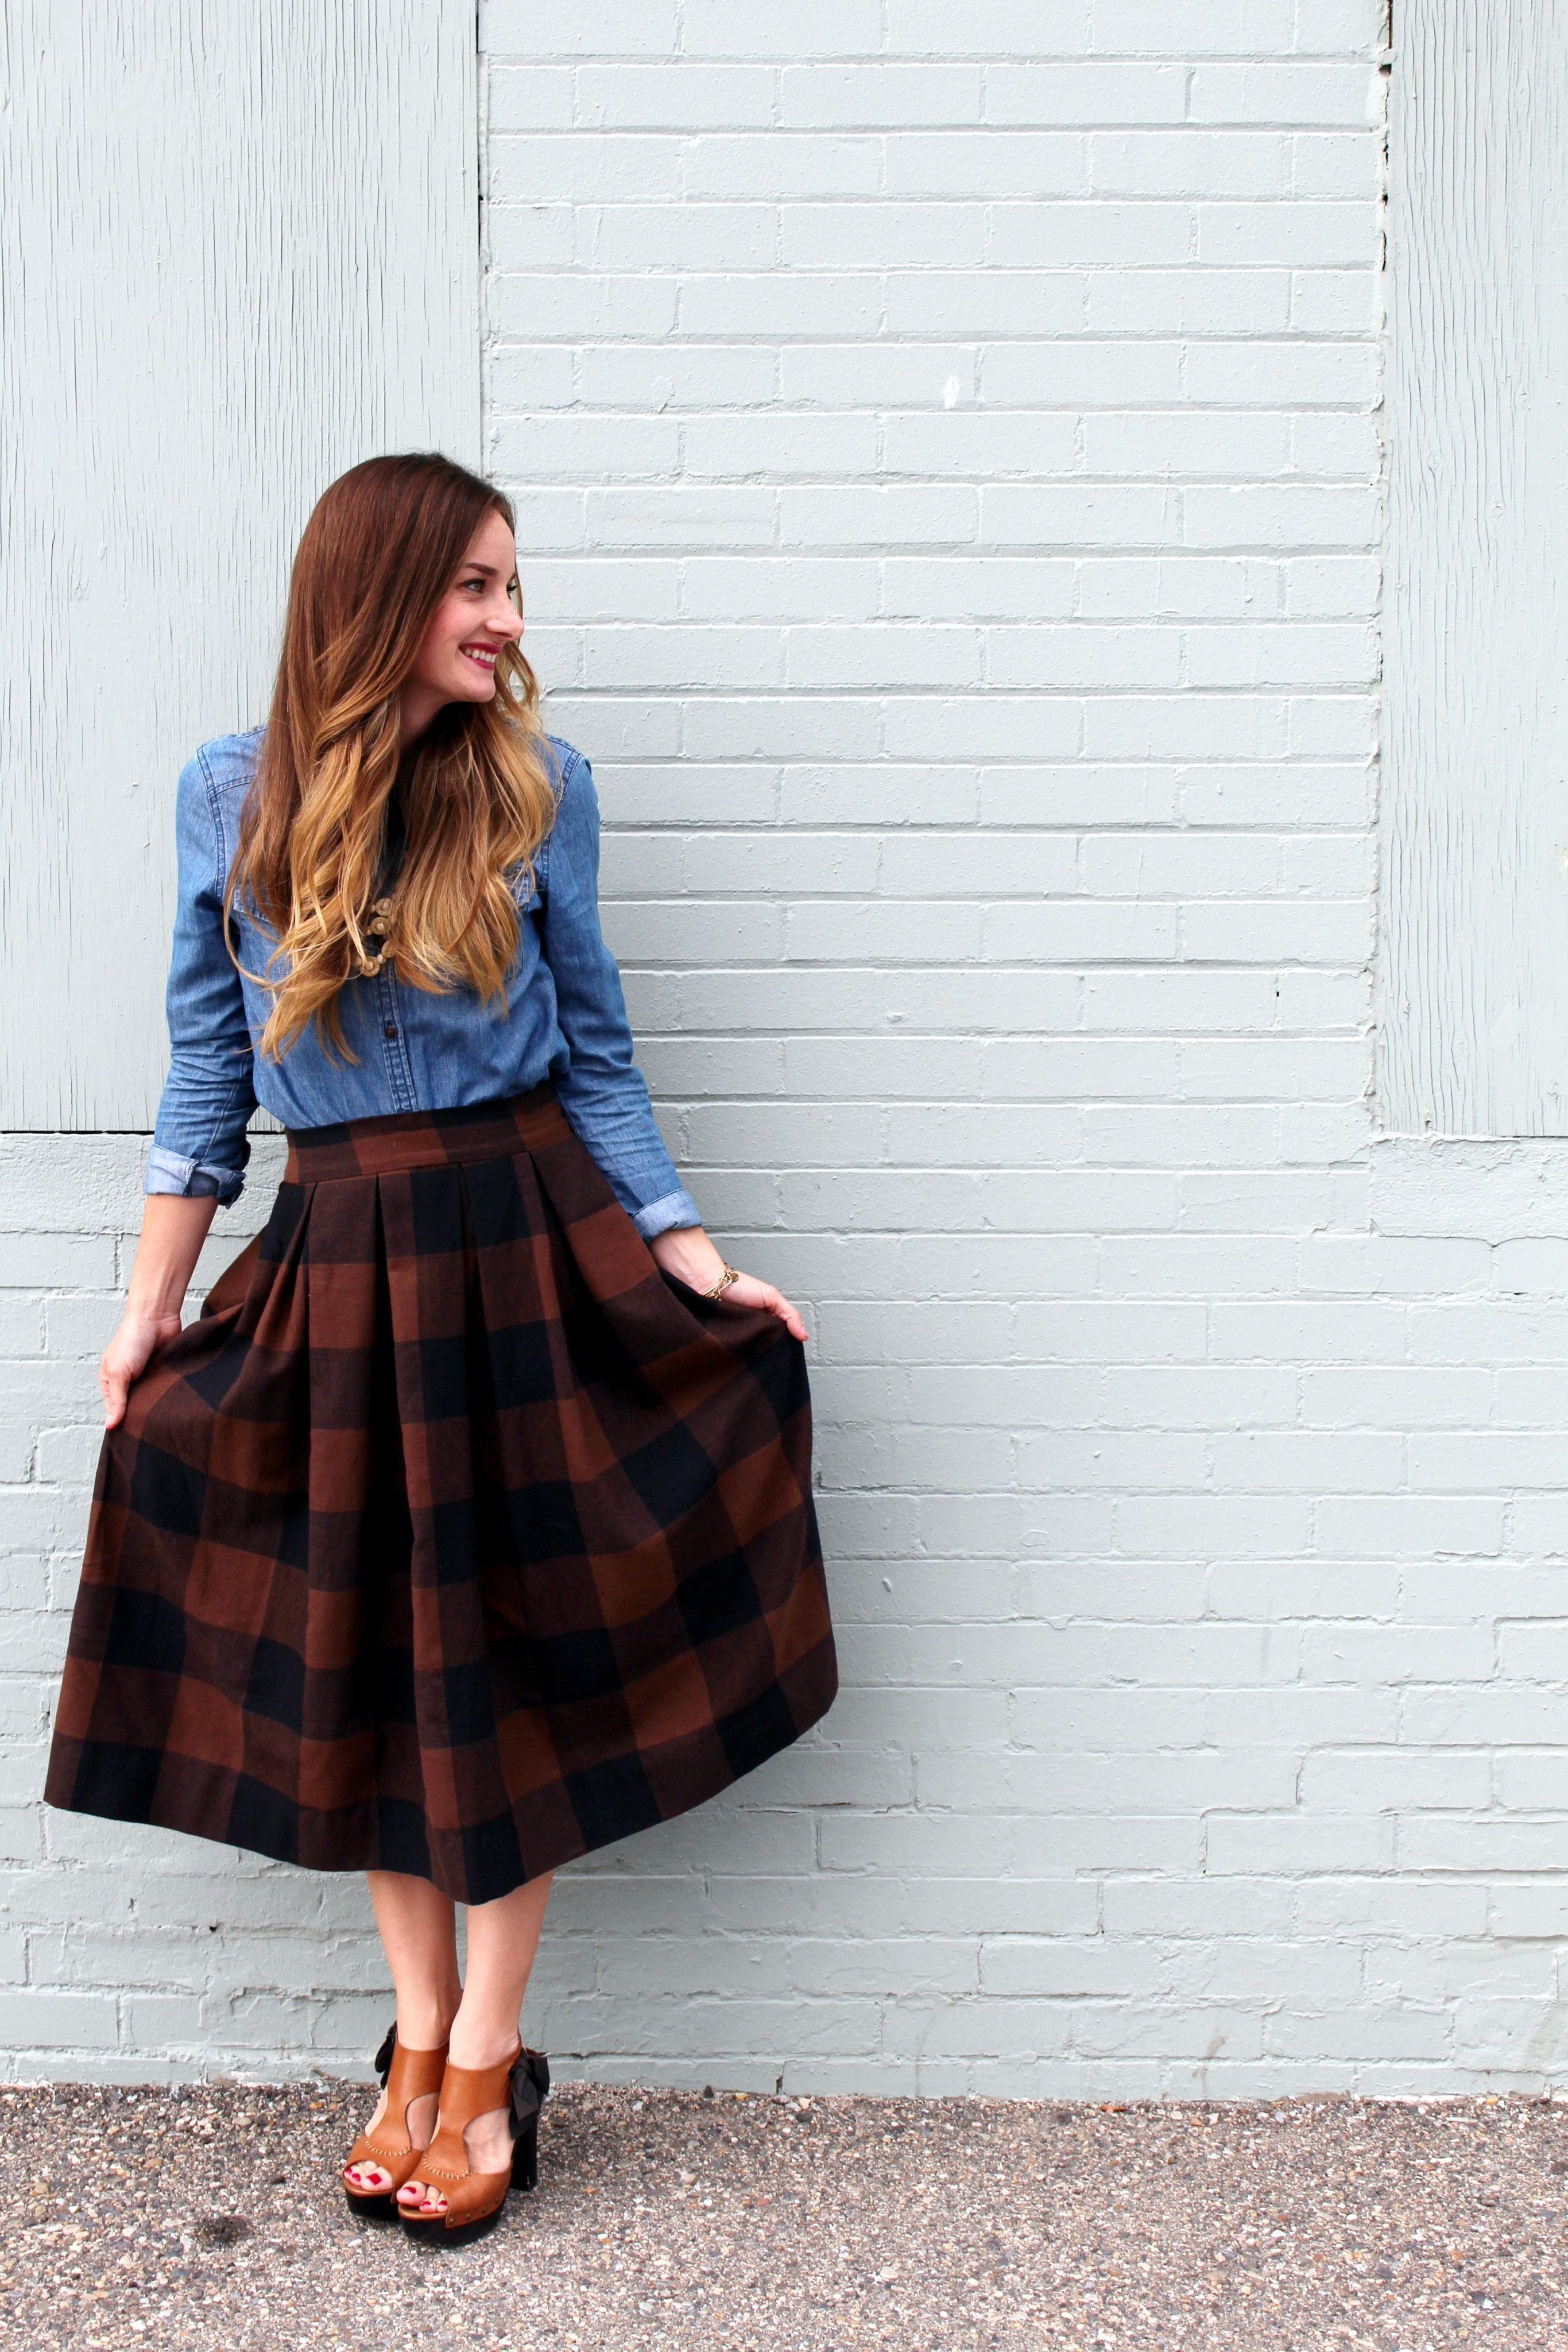 Filed Under: ALL, DIY, Easy sewing, Sewing, Sewing for women Tagged With: midi skirt, sewing, skirt tutorials, skirts, tutorial About Andrea Andrea is a mom to four and the creator of both Andrea's Notebook and Sewtorial.